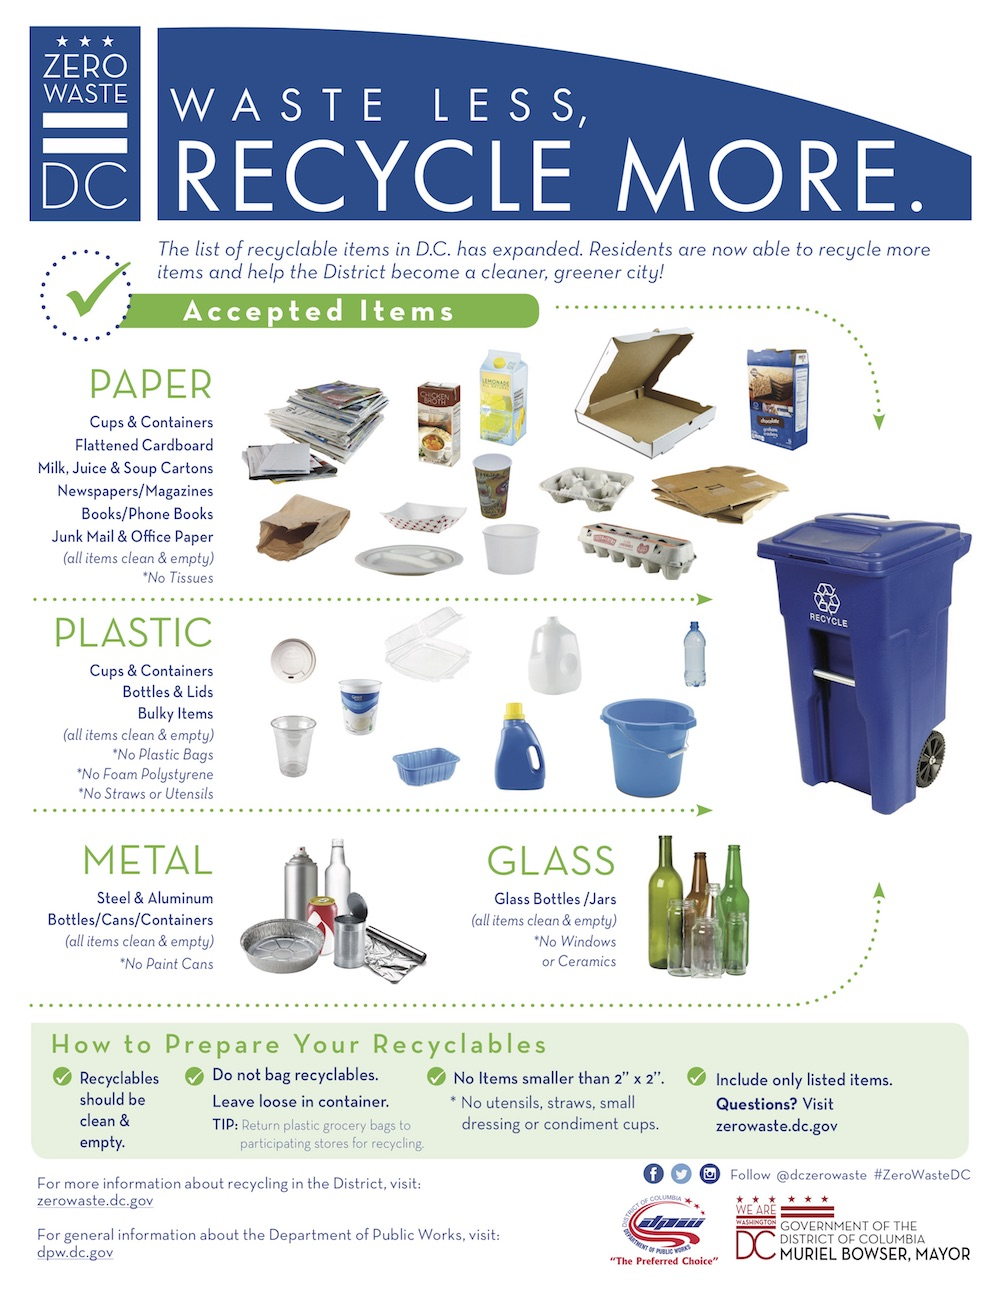 PDF of new recyclable items.